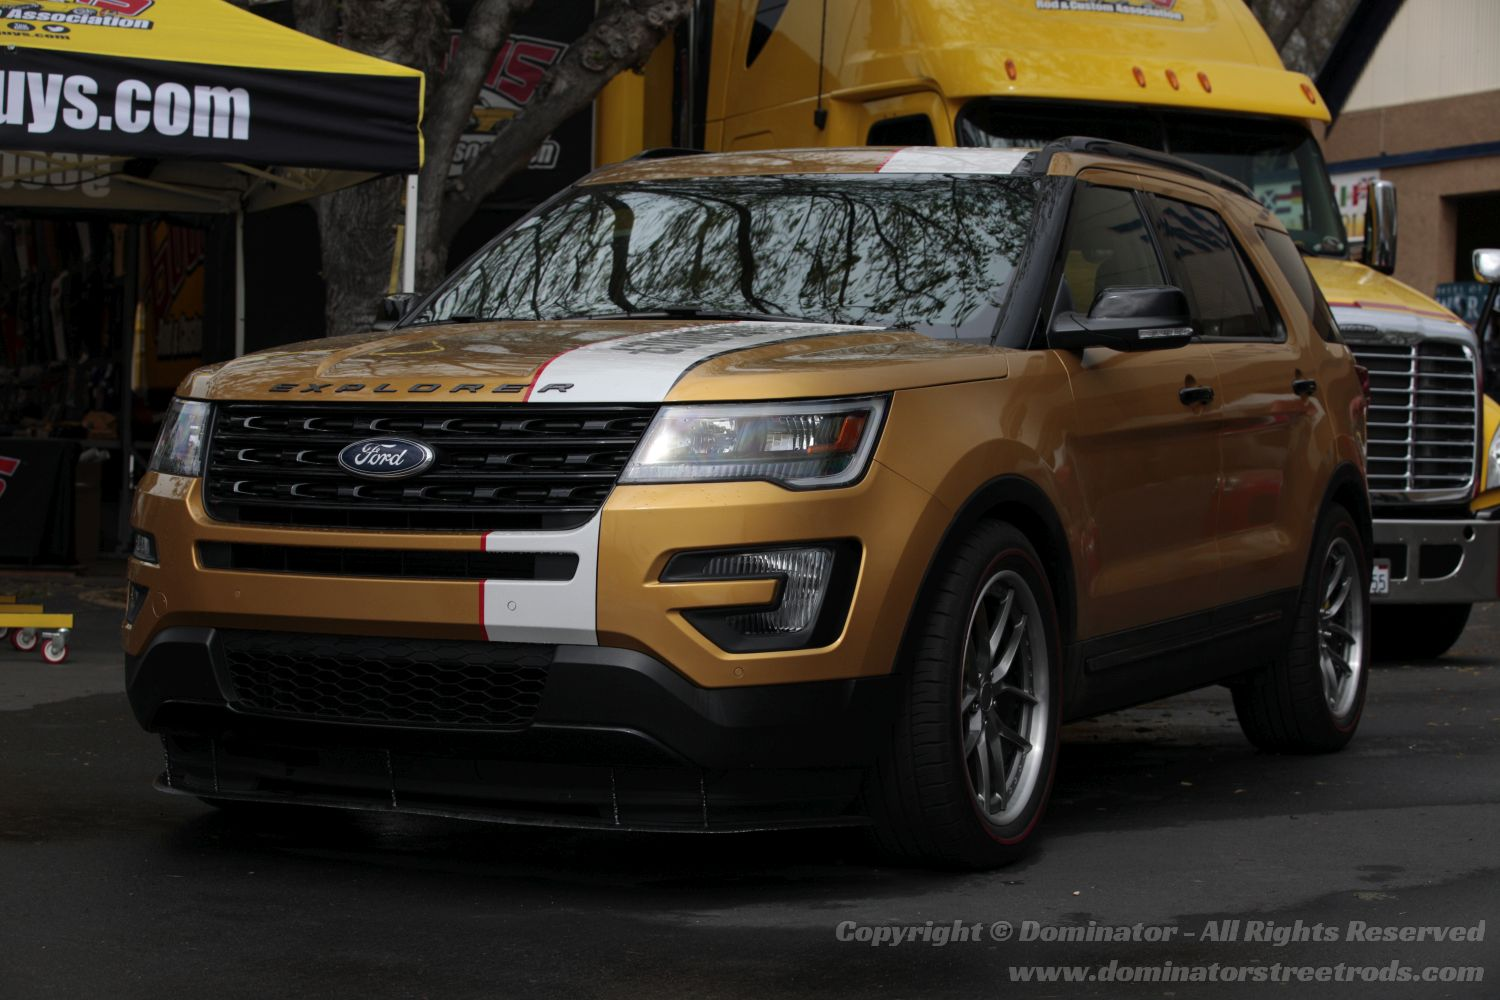 Goodguys Explorer